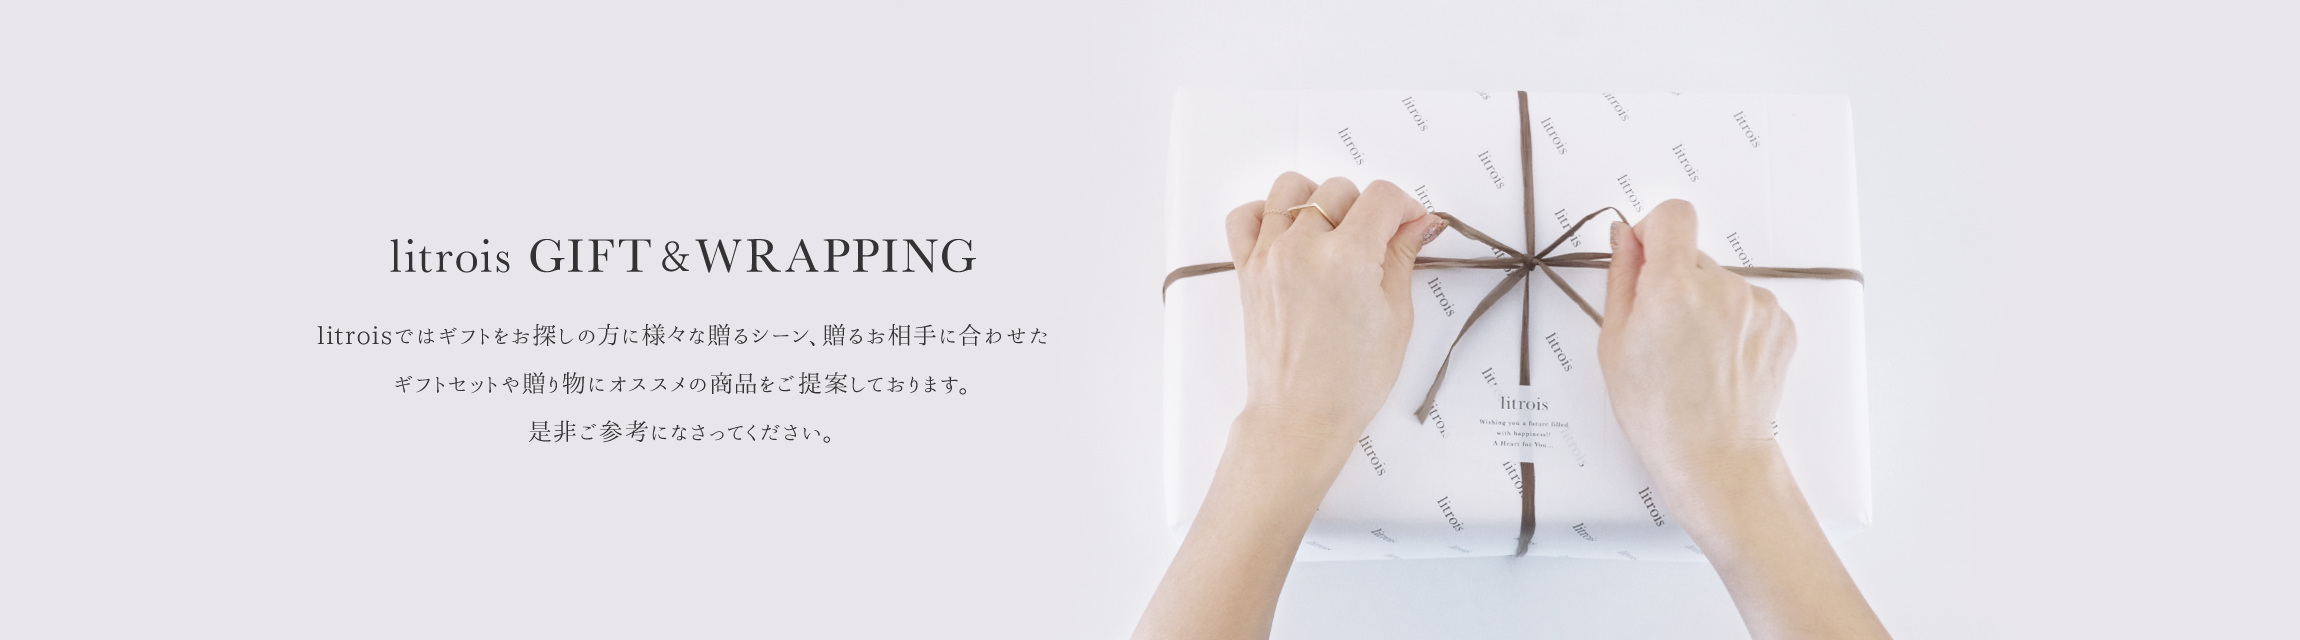 GIFT&WRAPPING -ギフト&ラッピング-